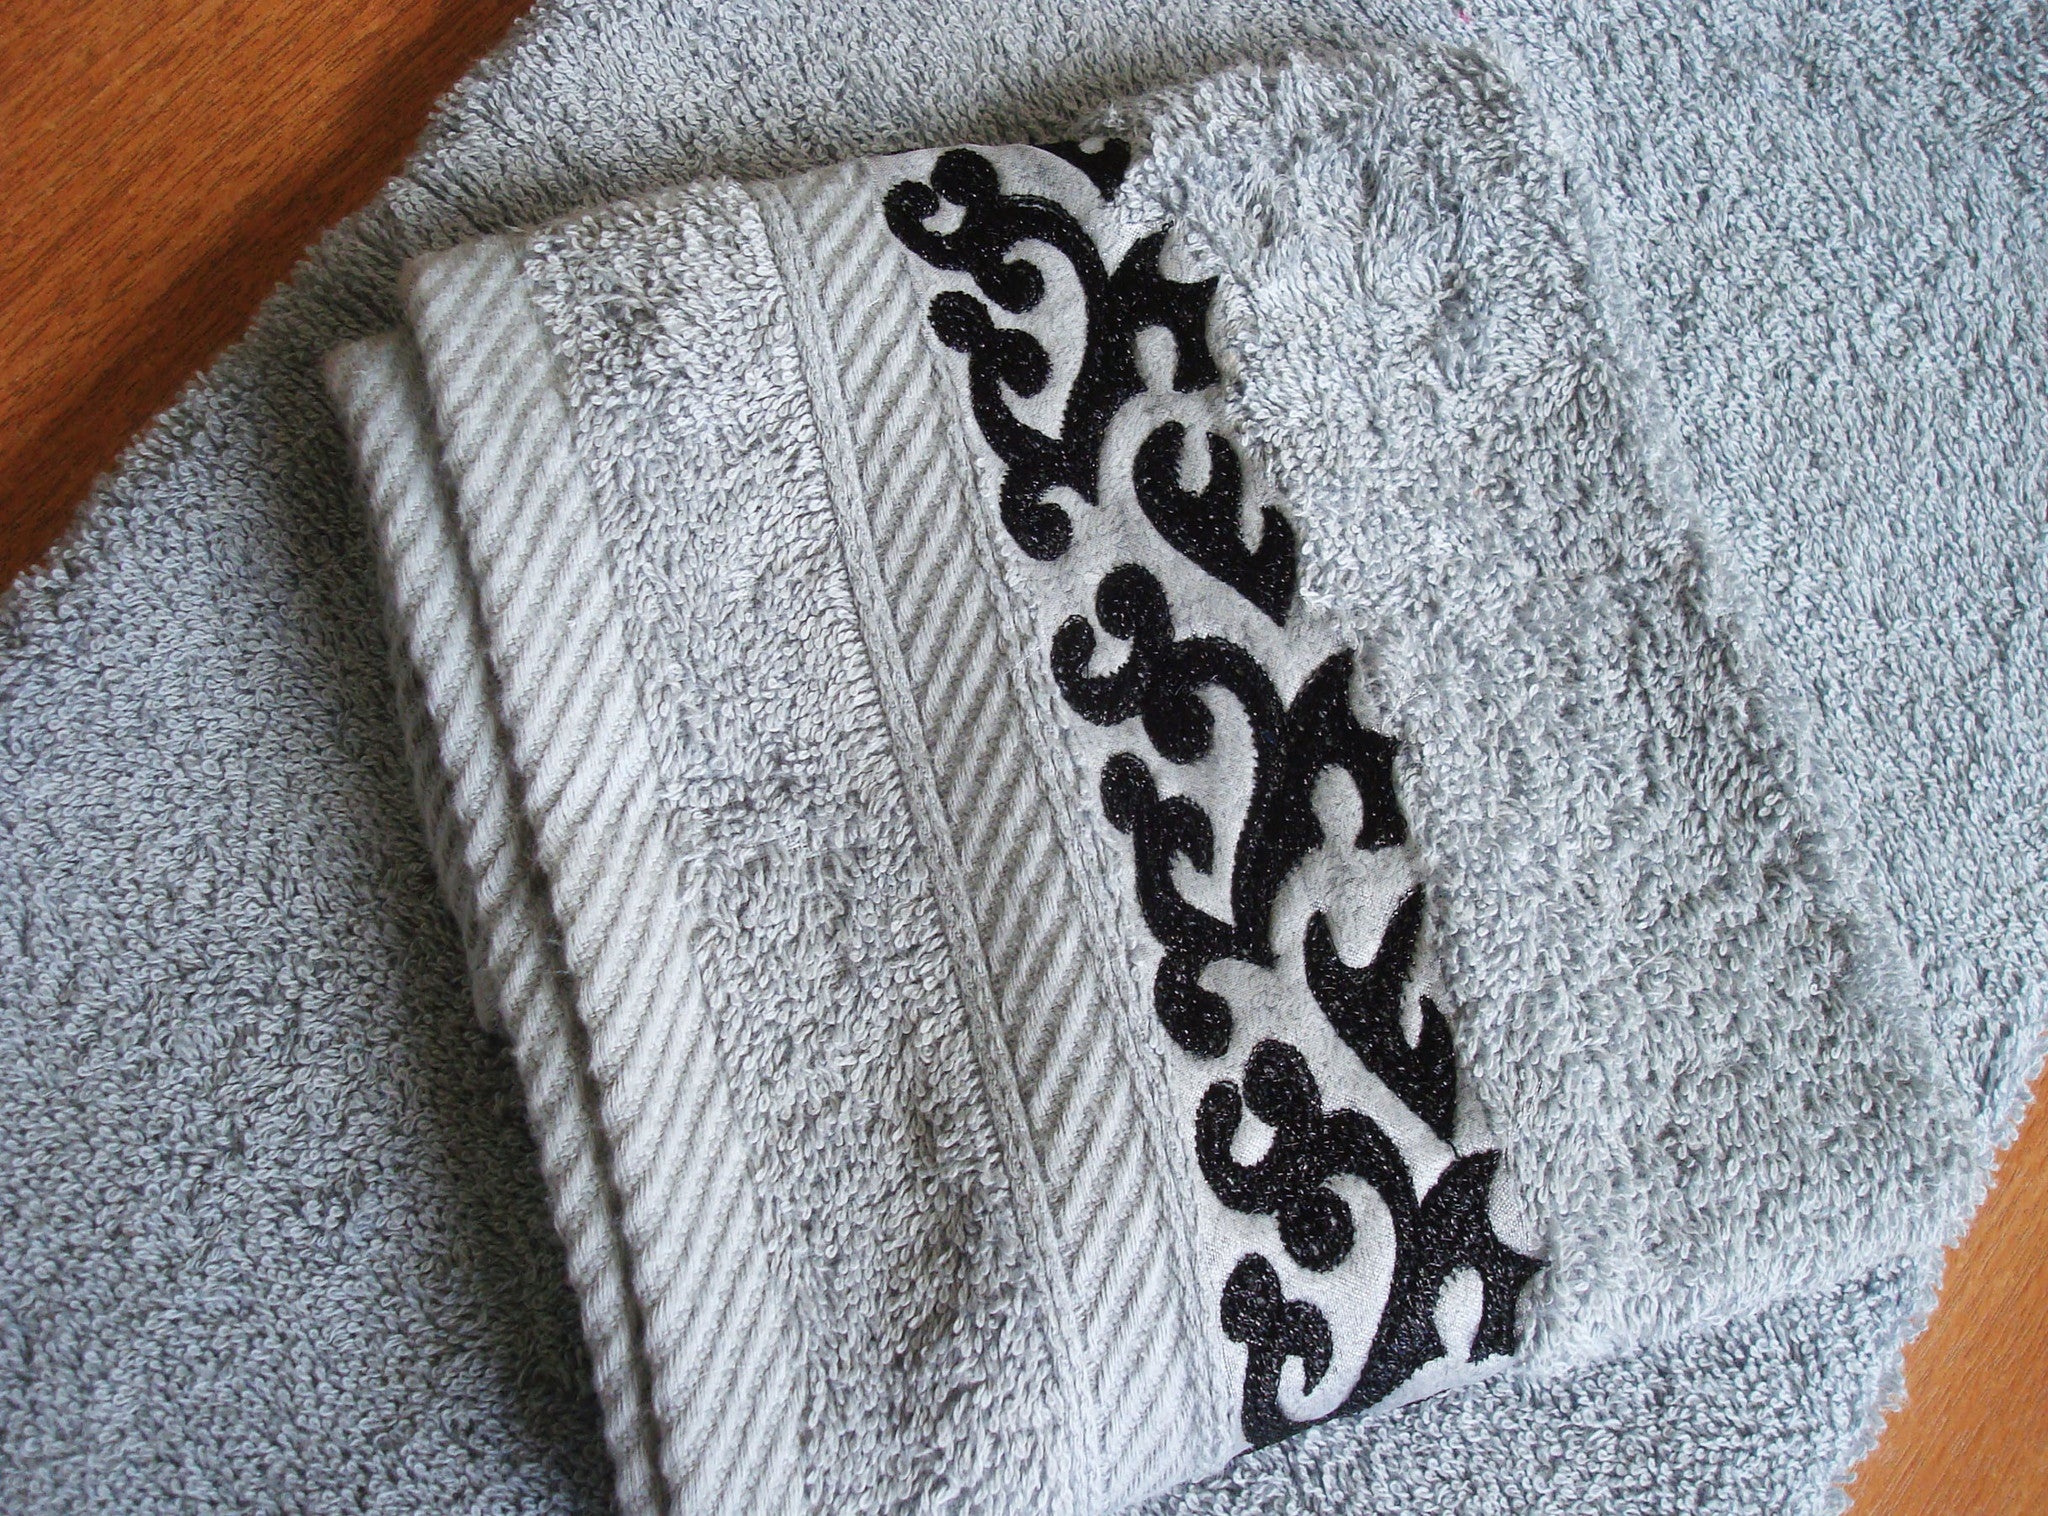 Embroidered Towel- Arabesque| منشفة مطرزة- نقش ارابسك